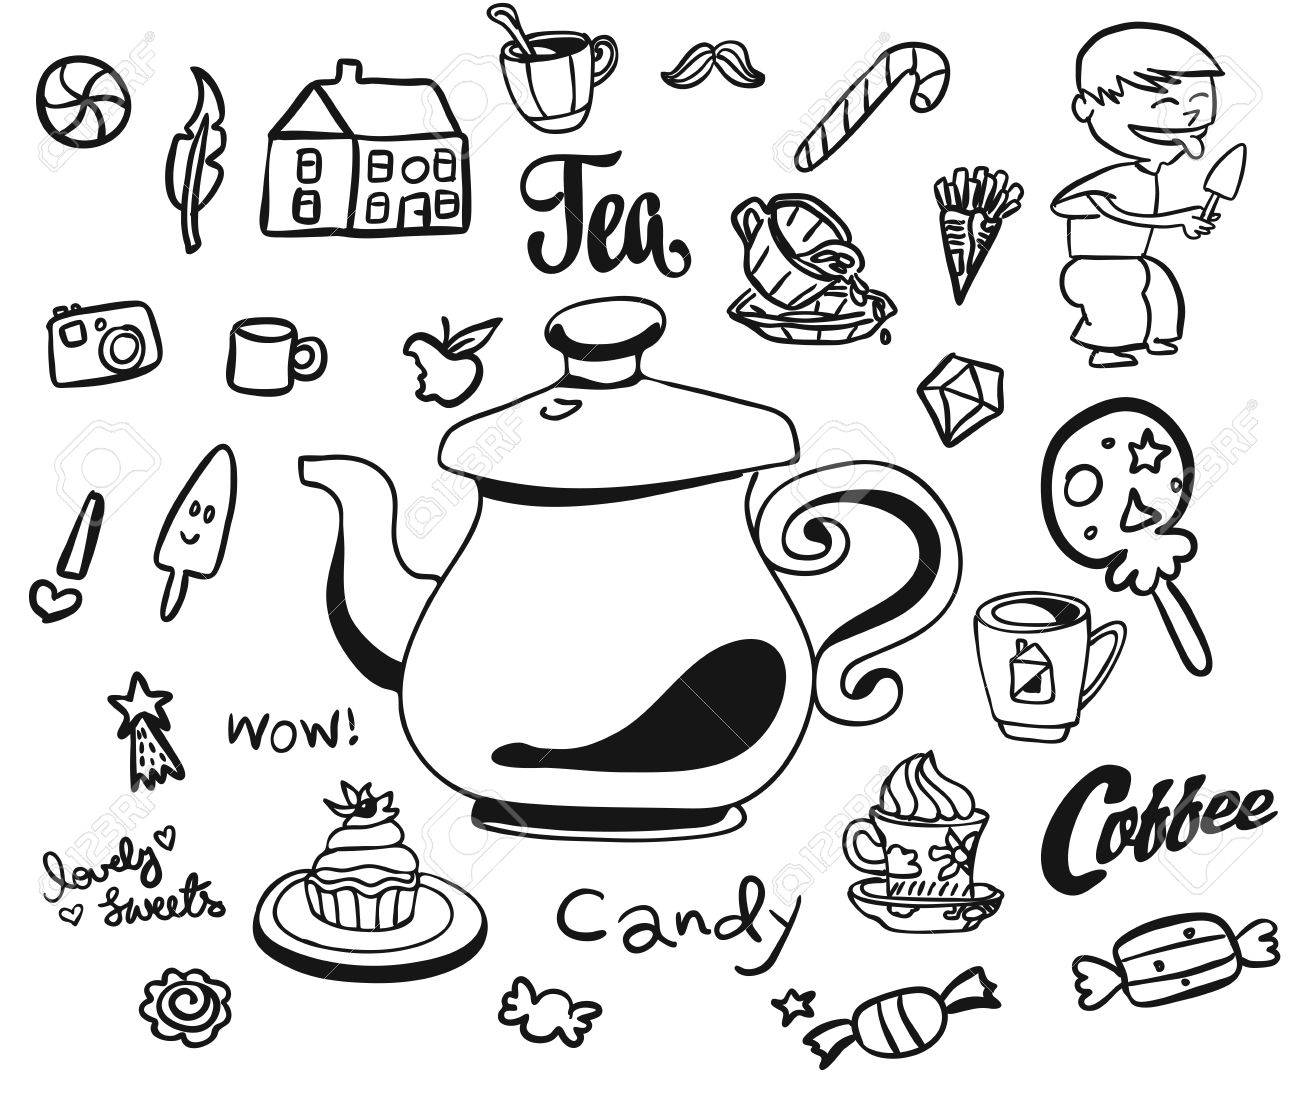 Afternoon tea and breakfast doodles with symbols for kids hand afternoon tea and breakfast doodles with symbols for kids hand drawn sketches usable for buycottarizona